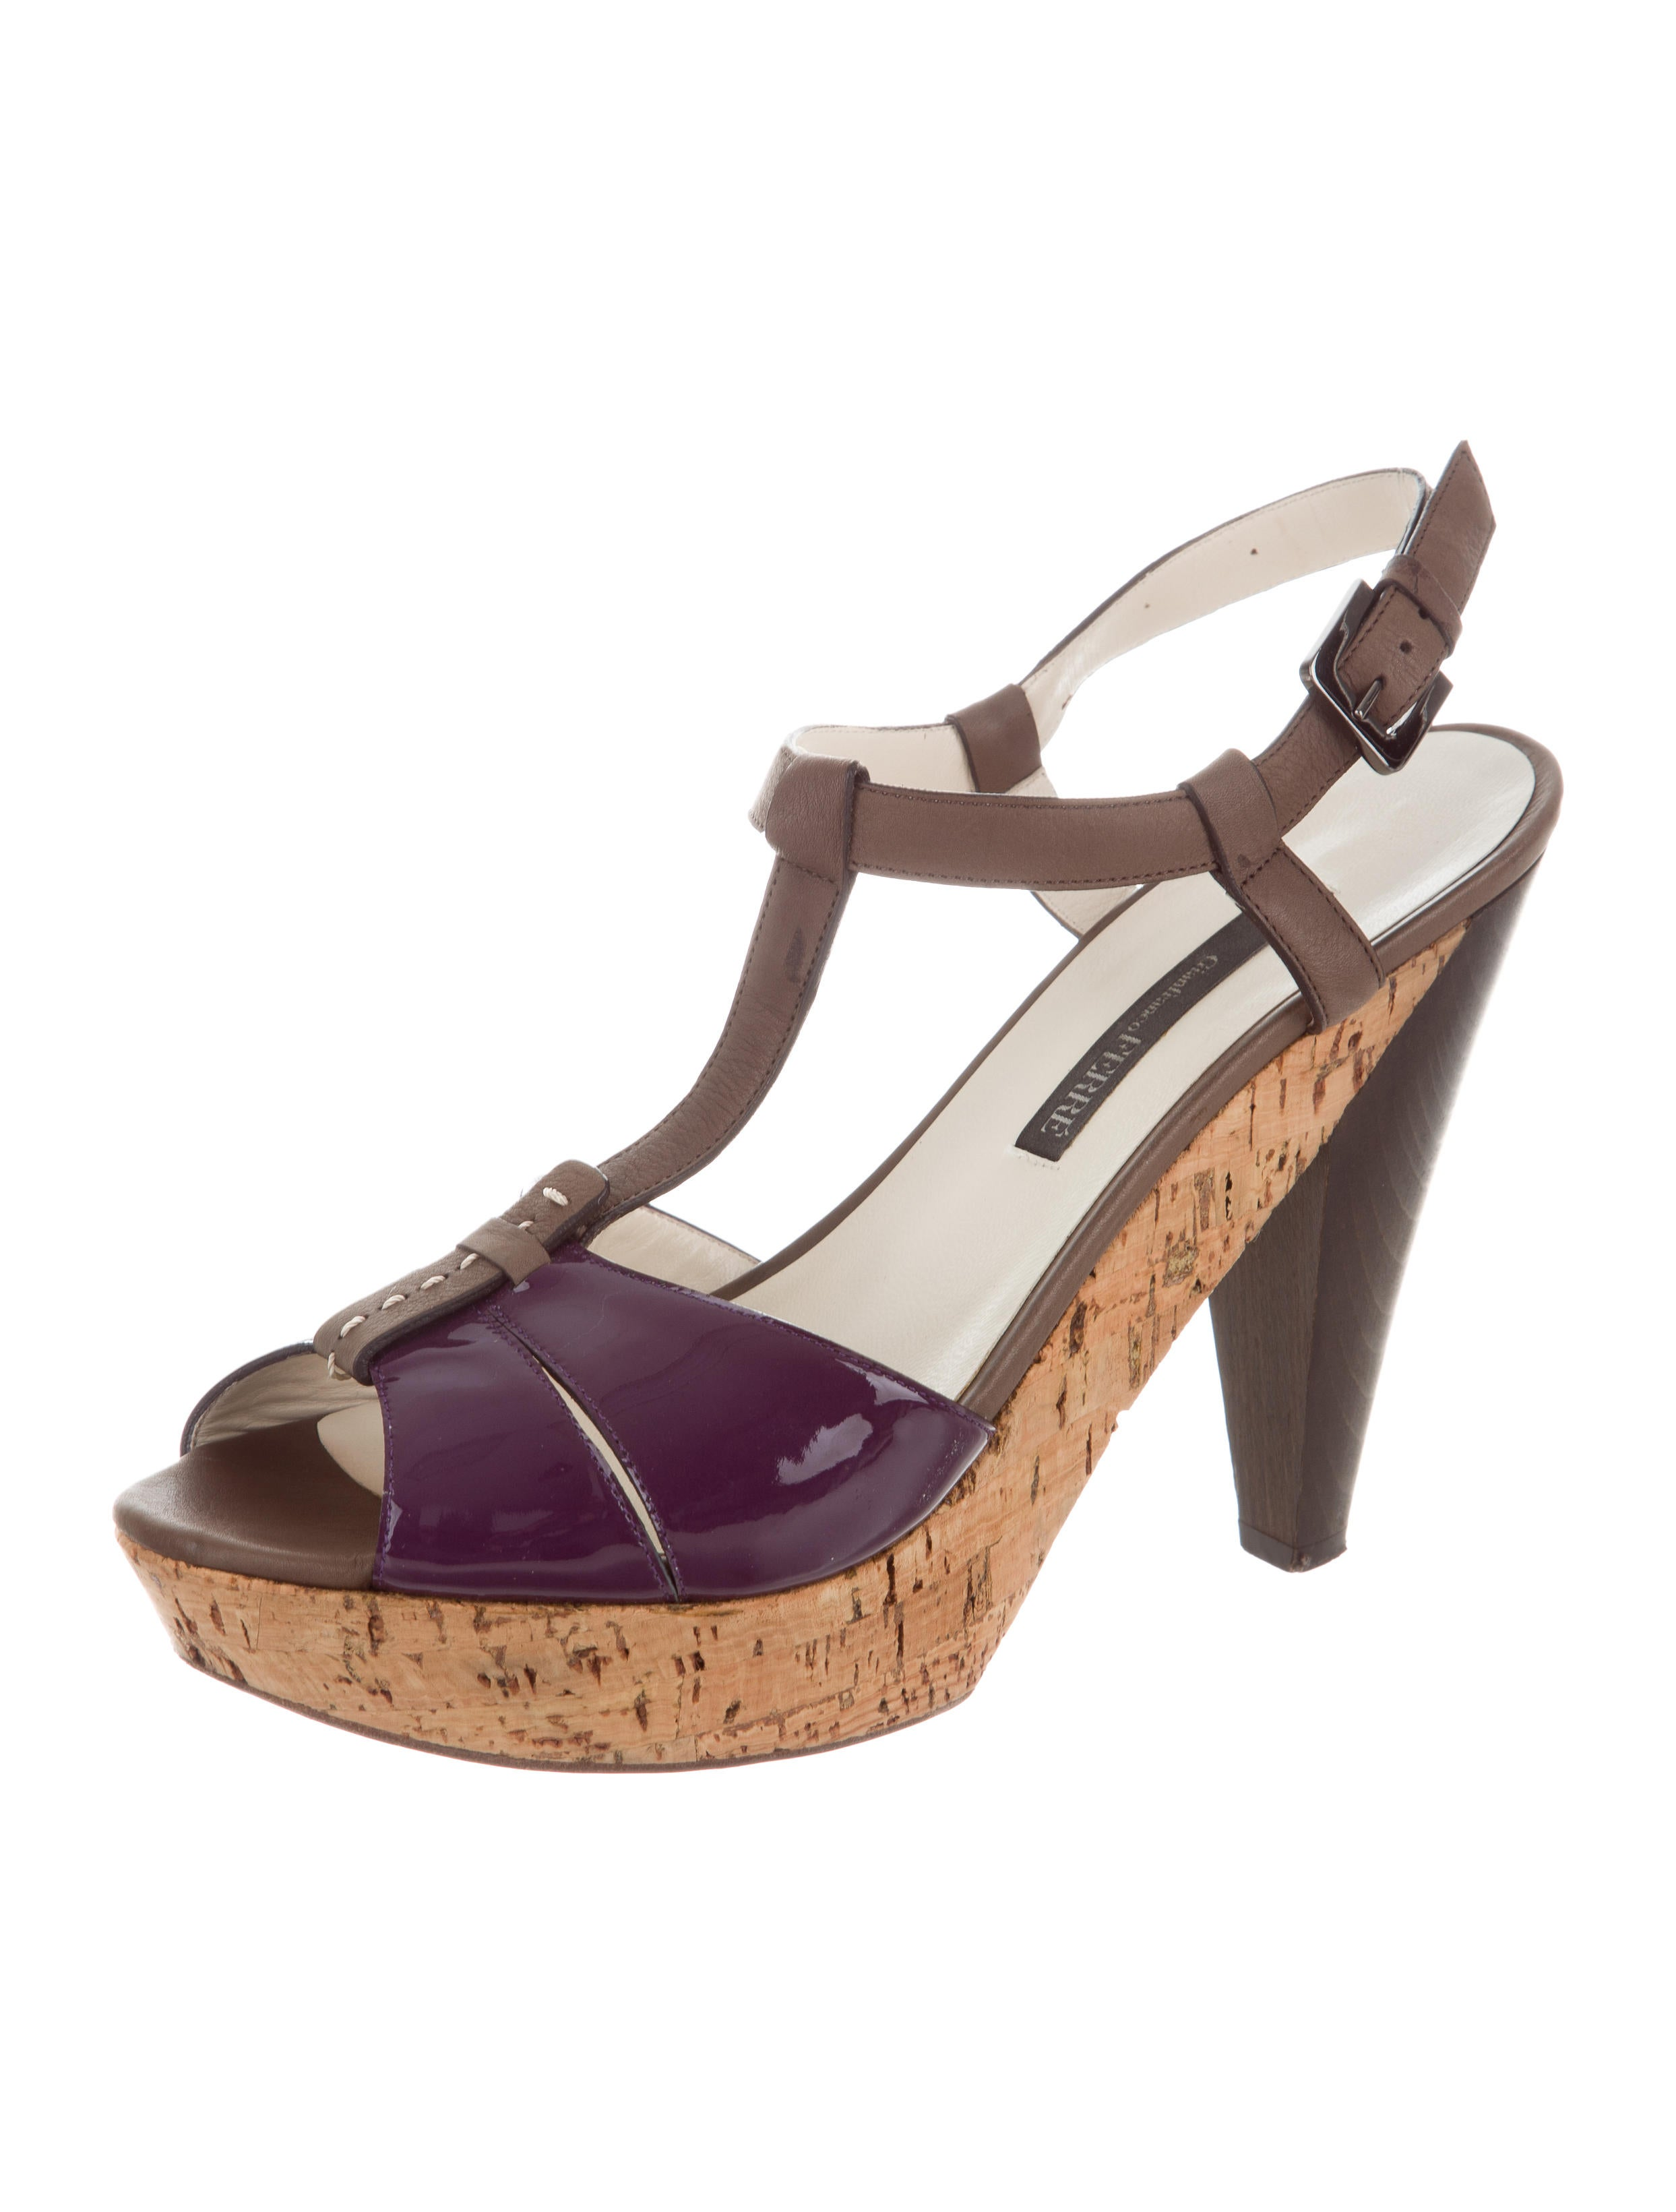 Gianfranco Ferre T-Strap Platform Sandals outlet sale online FxtL7